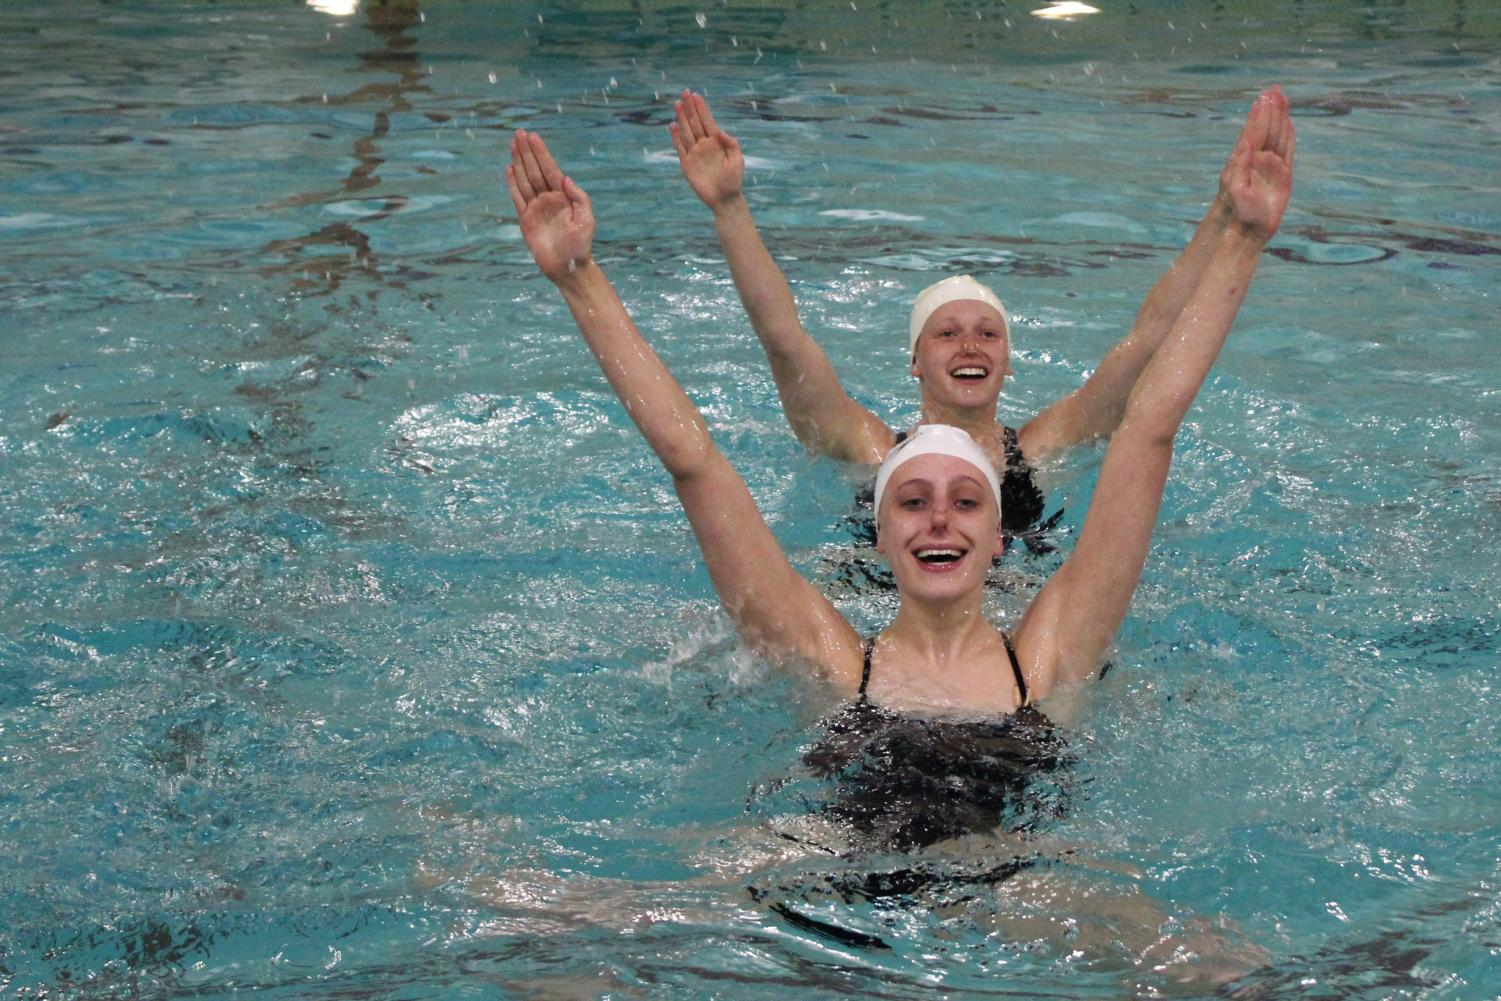 Sophomore Annie Breyak and senior Savannah Kjaer swim their extended duet at the dual meet against Richfield May 3. The team's next meet is at 4:30 p.m. May 8 at the high school swimming pool.